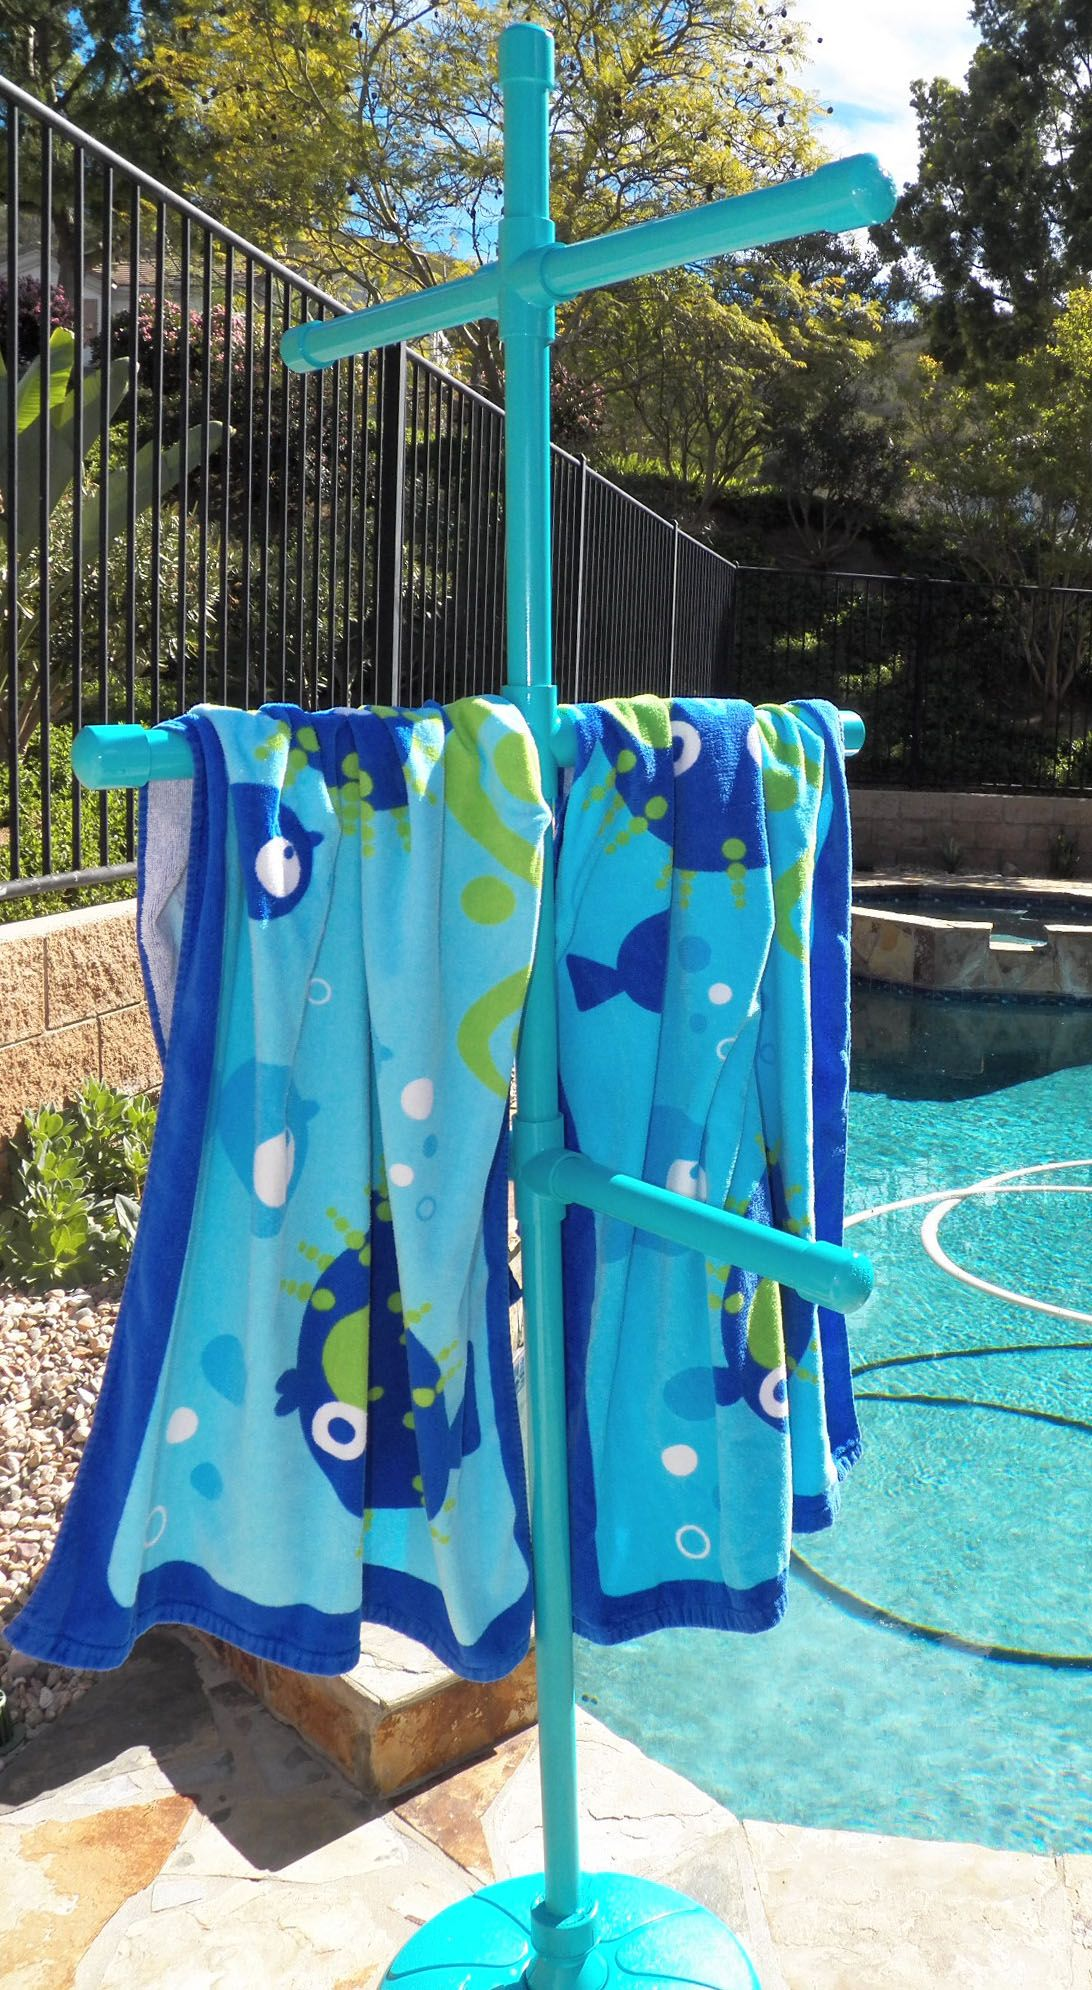 Piscinas Pvc Completed 03 14 Poolside Towel Tree From Pvc Pipe And A 7